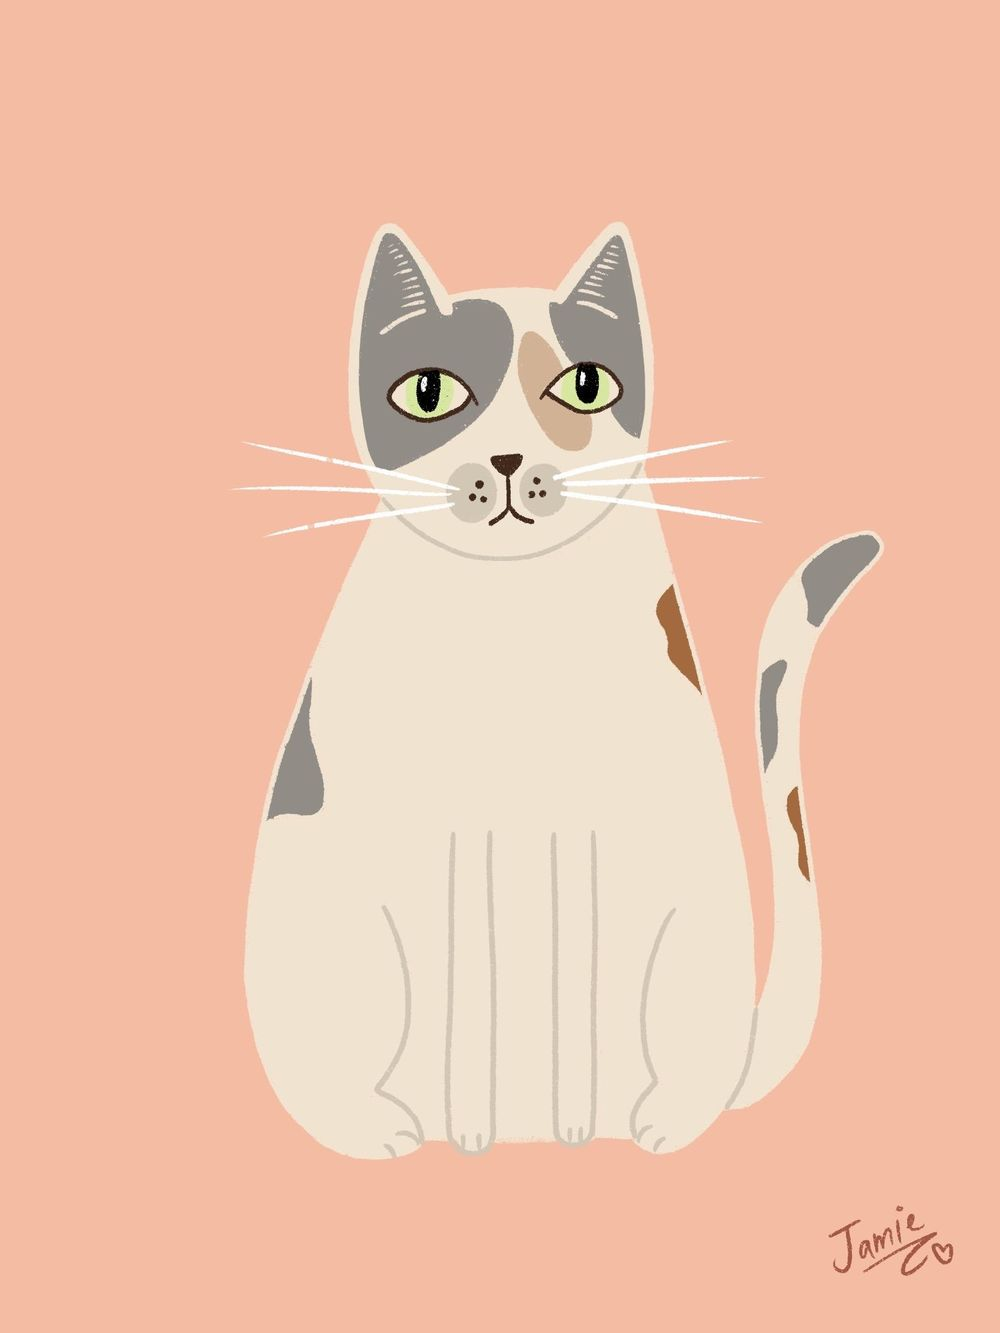 My Kitty Cat - image 1 - student project